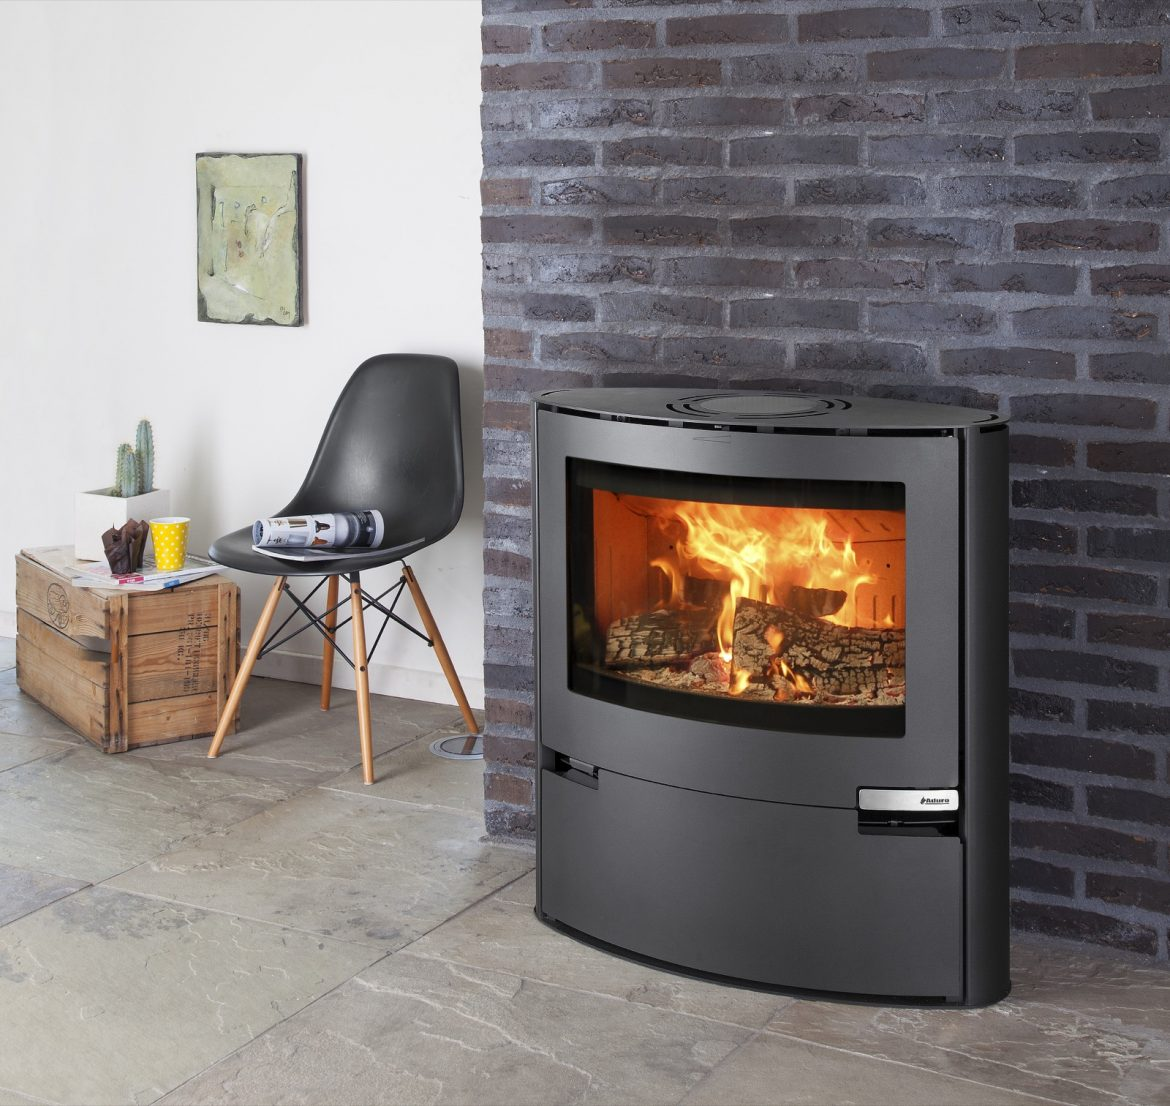 Wood Burning Stove For Sale-Why It's Better Than Others?